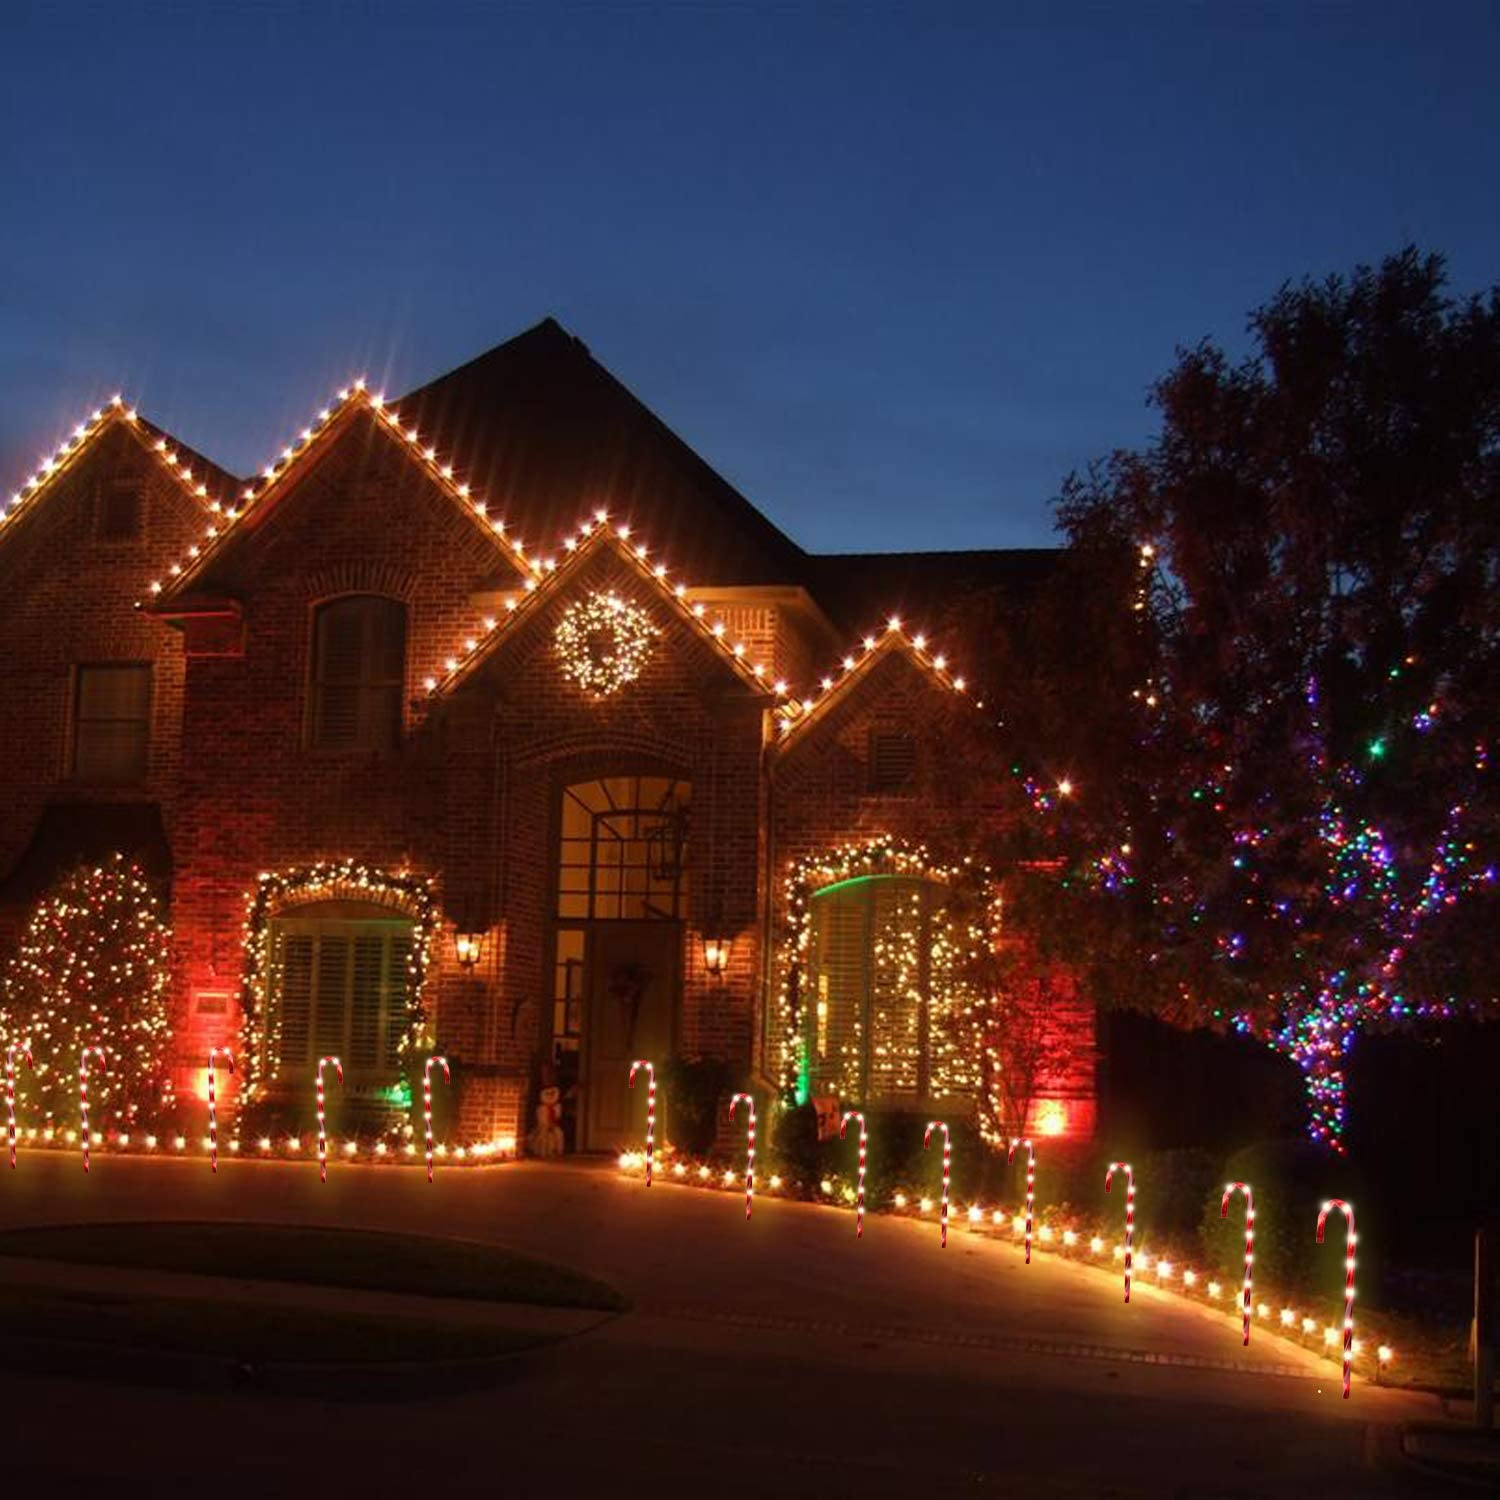 for Walkway 26 light Up Candy Canes Light with 6 Tungsten Bulbs Candy Cane Lights Christmas Pathway Markers Light Decorations 6 Pack Holiday Party Decor Yard UL Listed Home Xmas Outdoor Light